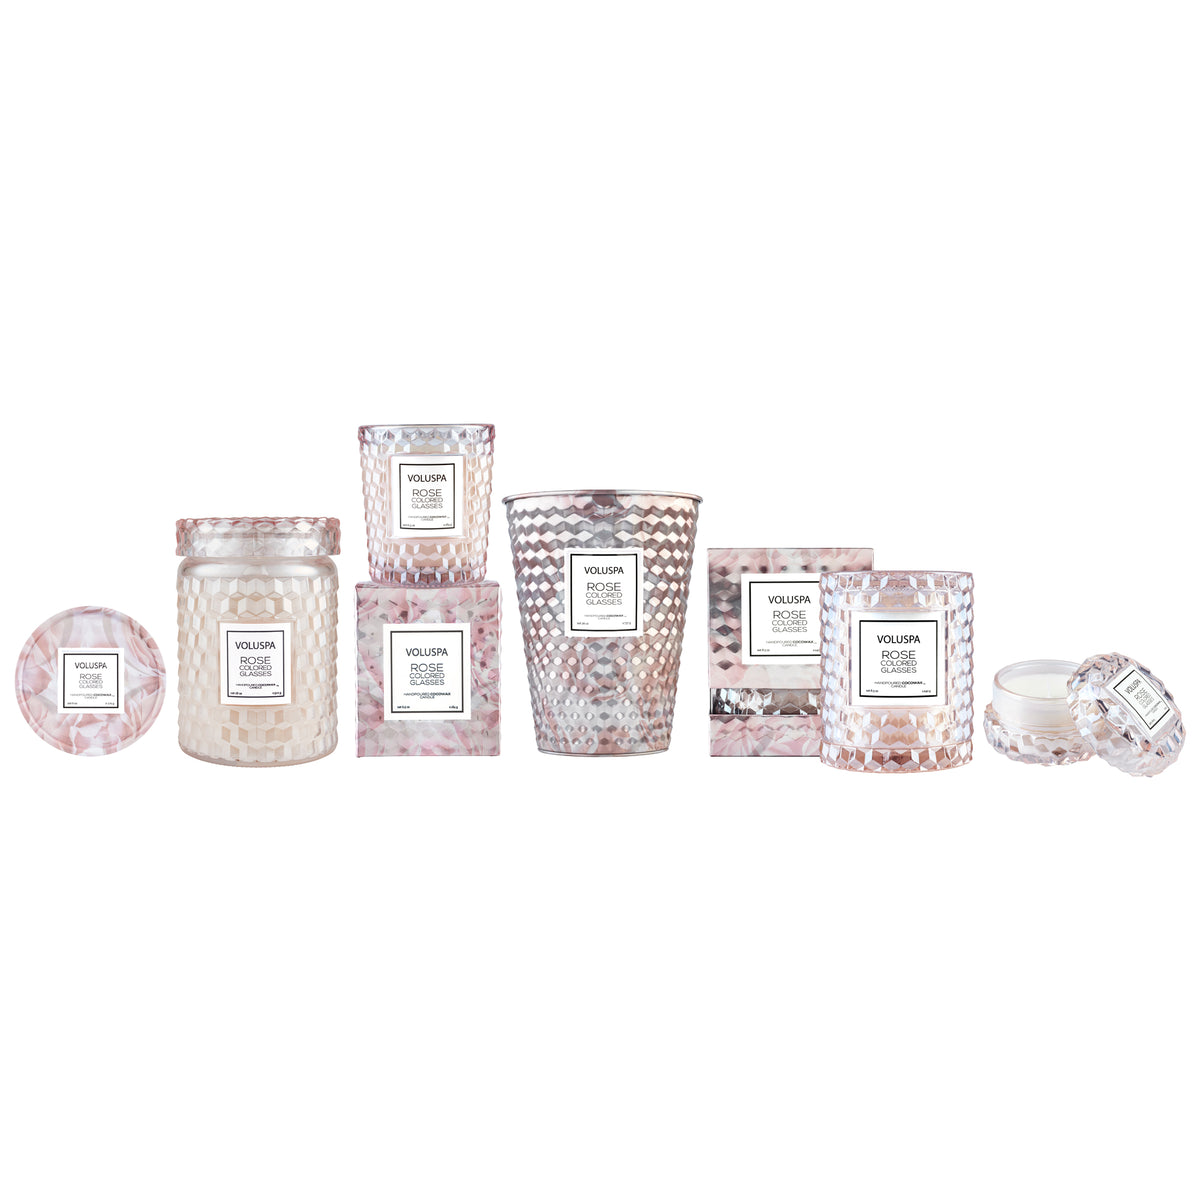 Rose Colored Glasses - Rose Colored Glasses Fragrance Collection - 1